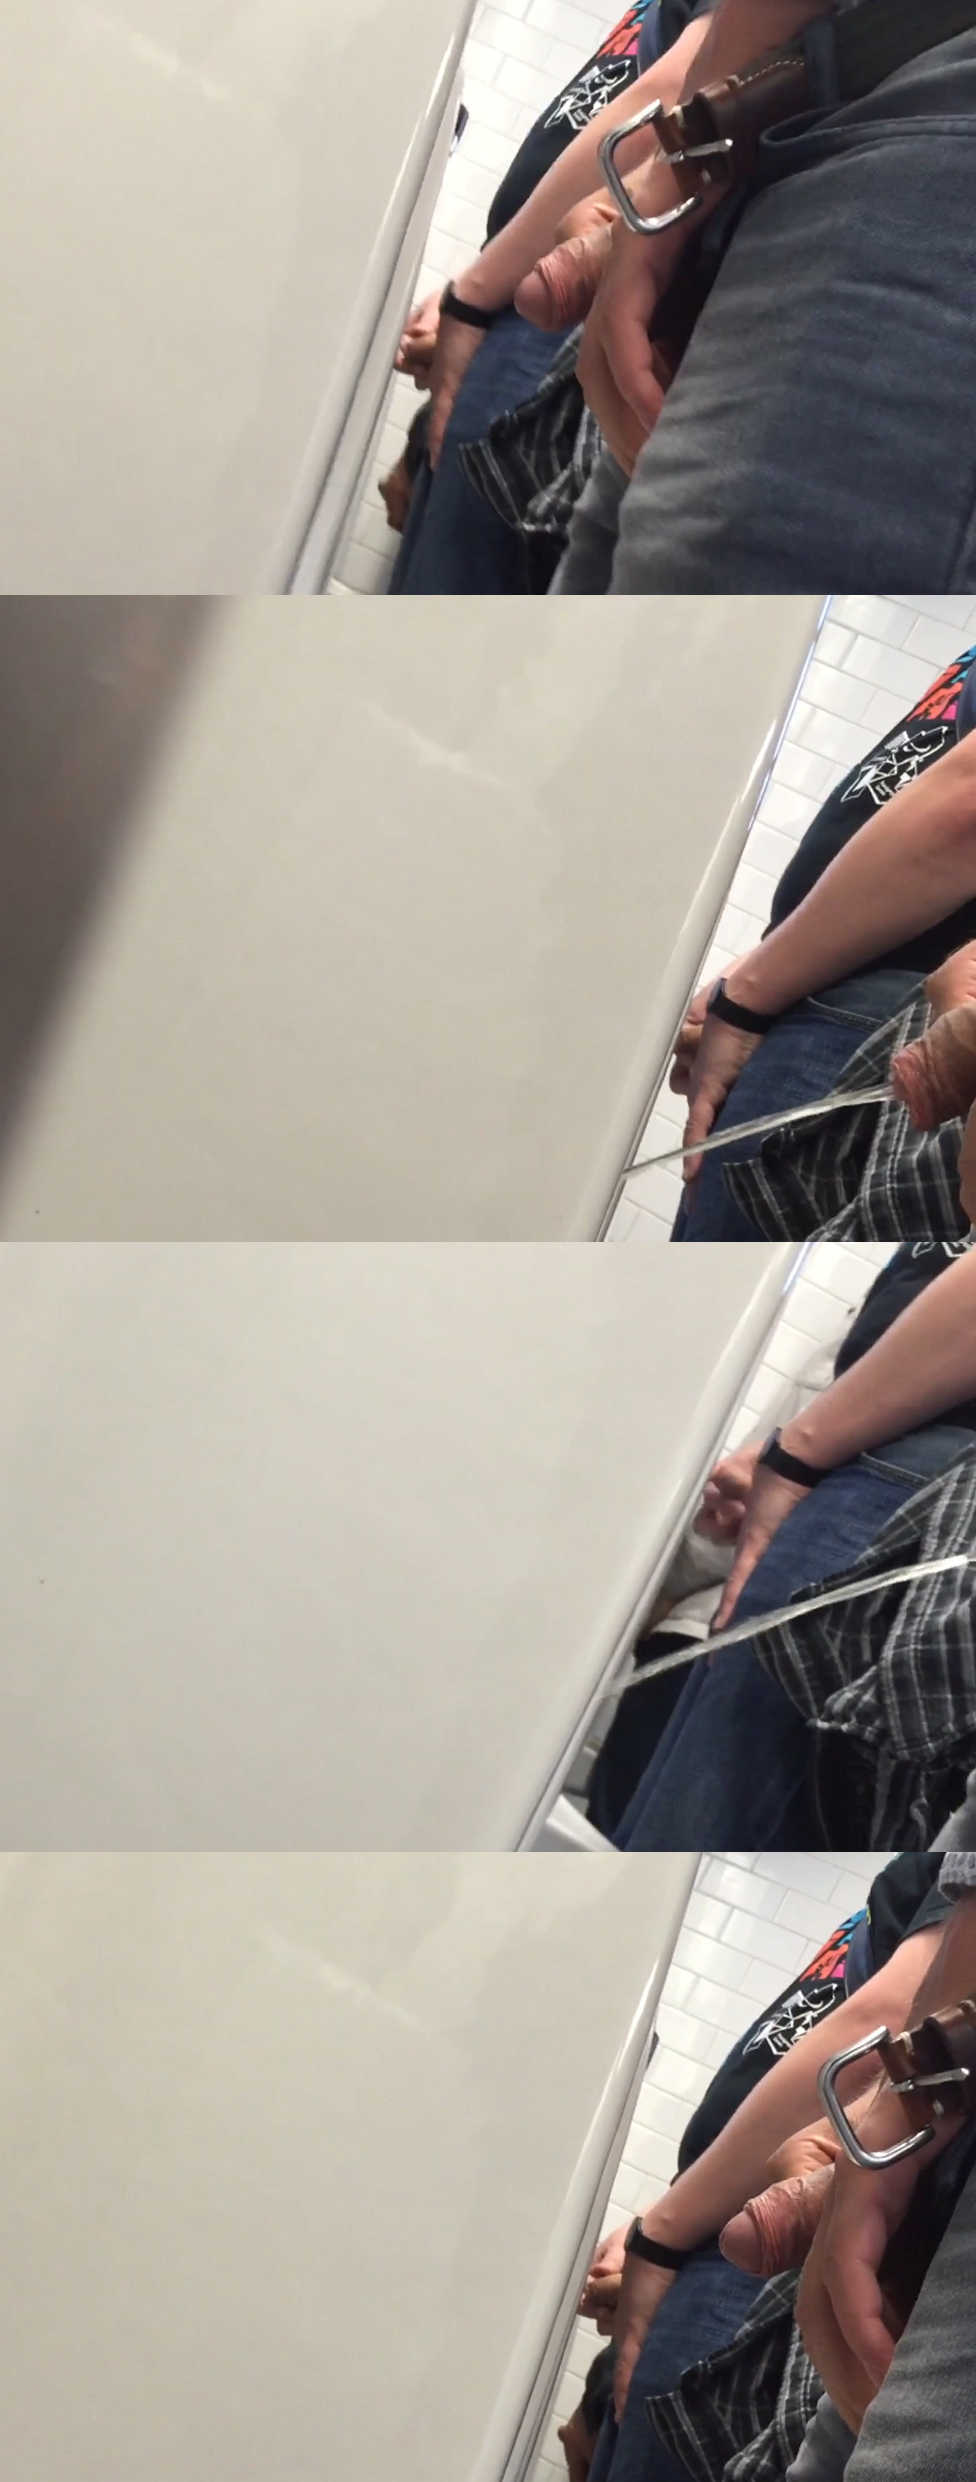 uncut men caught peeing at urinal by spycam